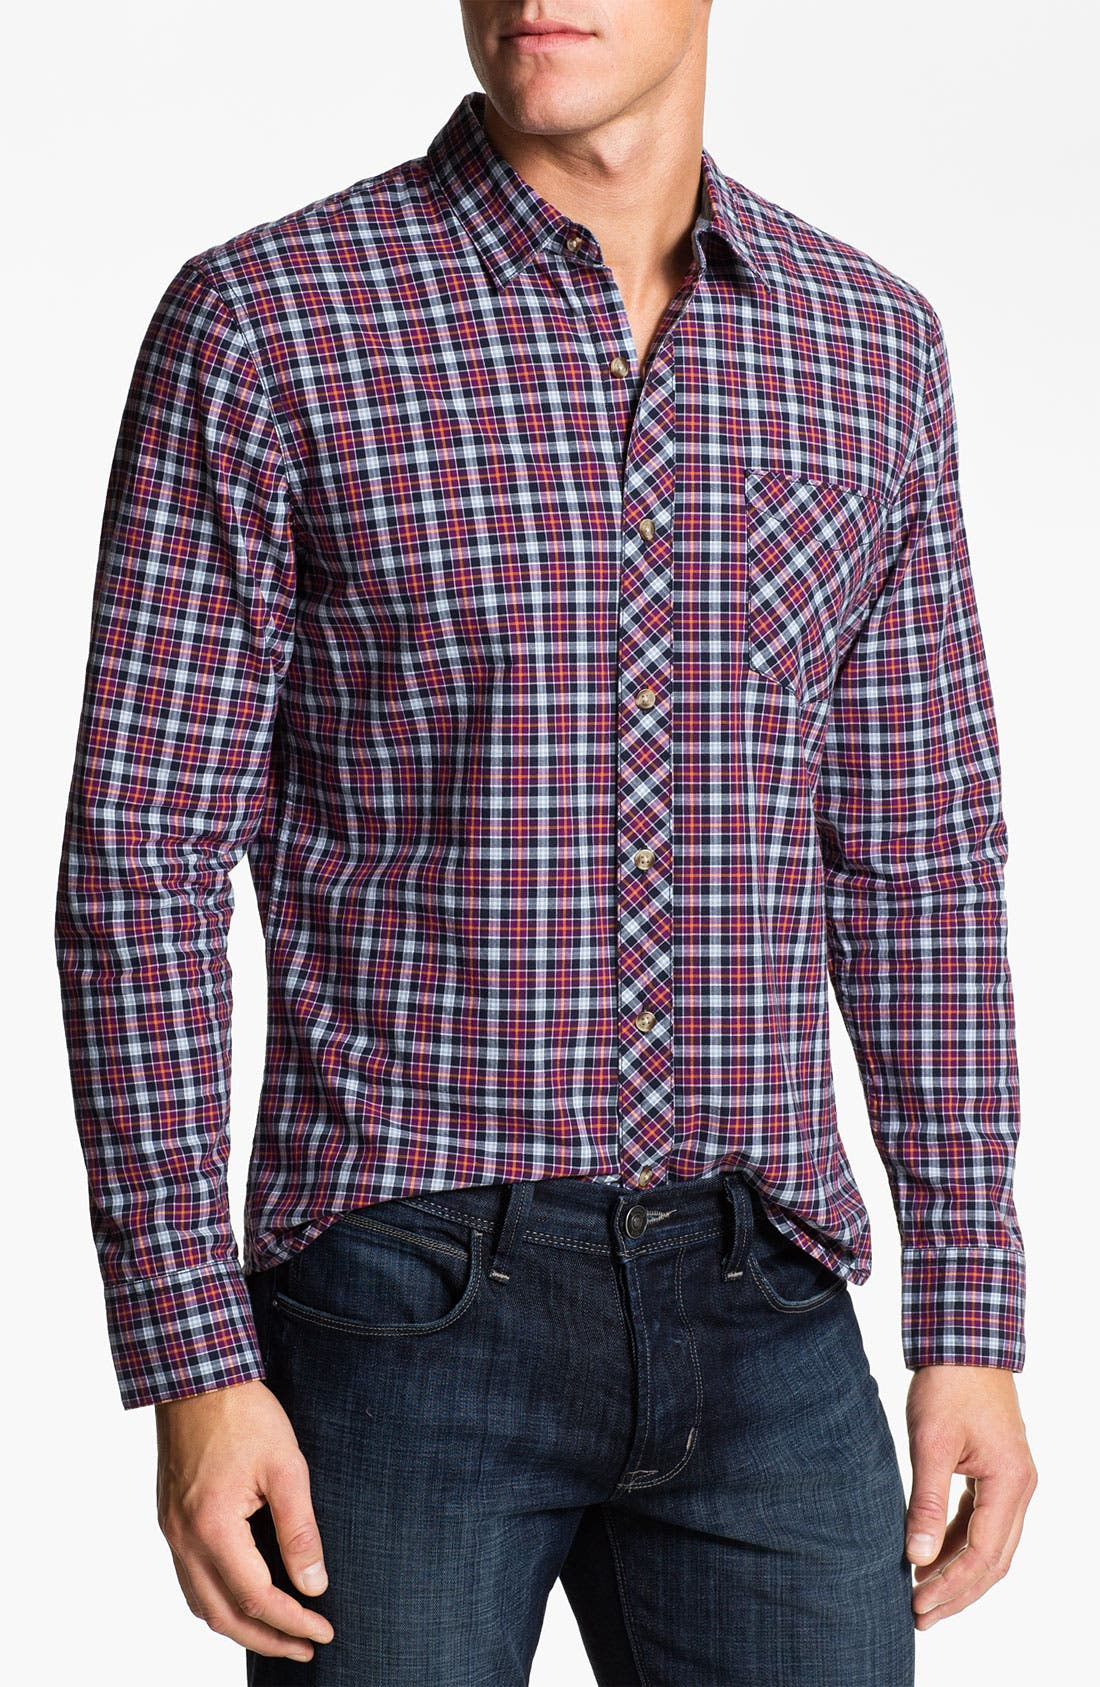 Alternate Image 1 Selected - 1901 Plaid Cotton Poplin Shirt